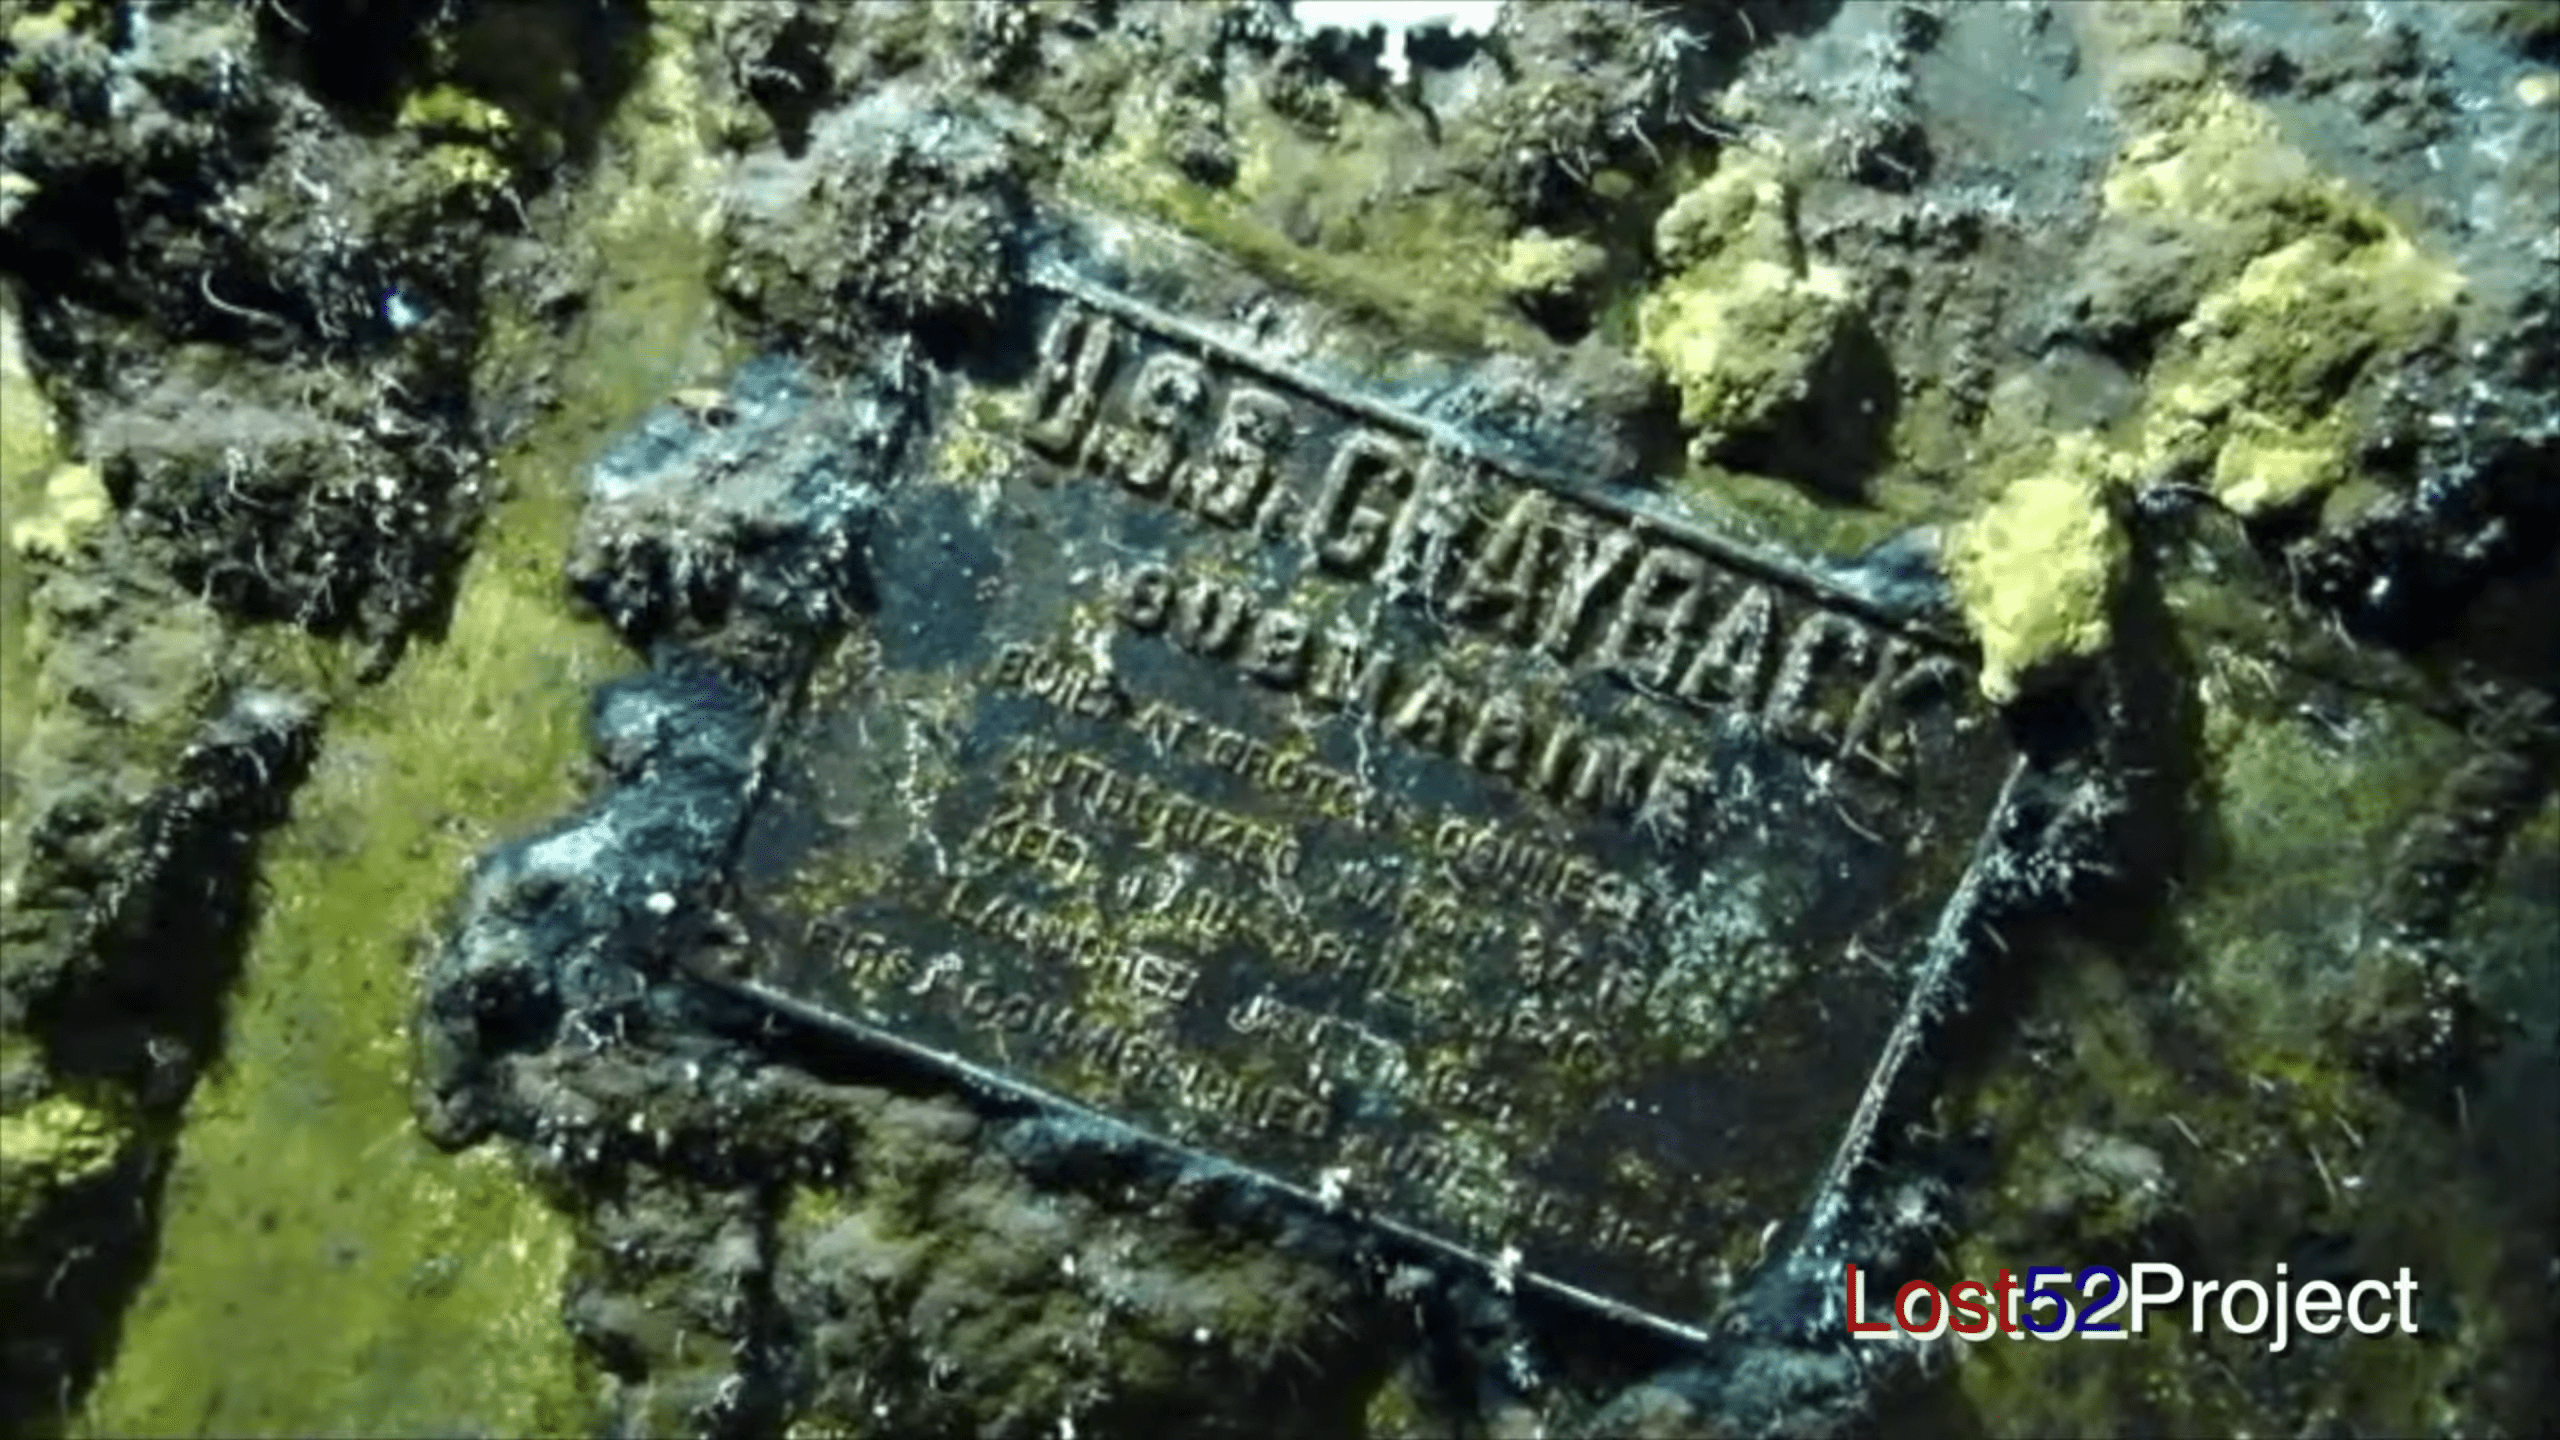 USS Grayback, a WWII submarine lost 75 years ago, located off coast of Japan